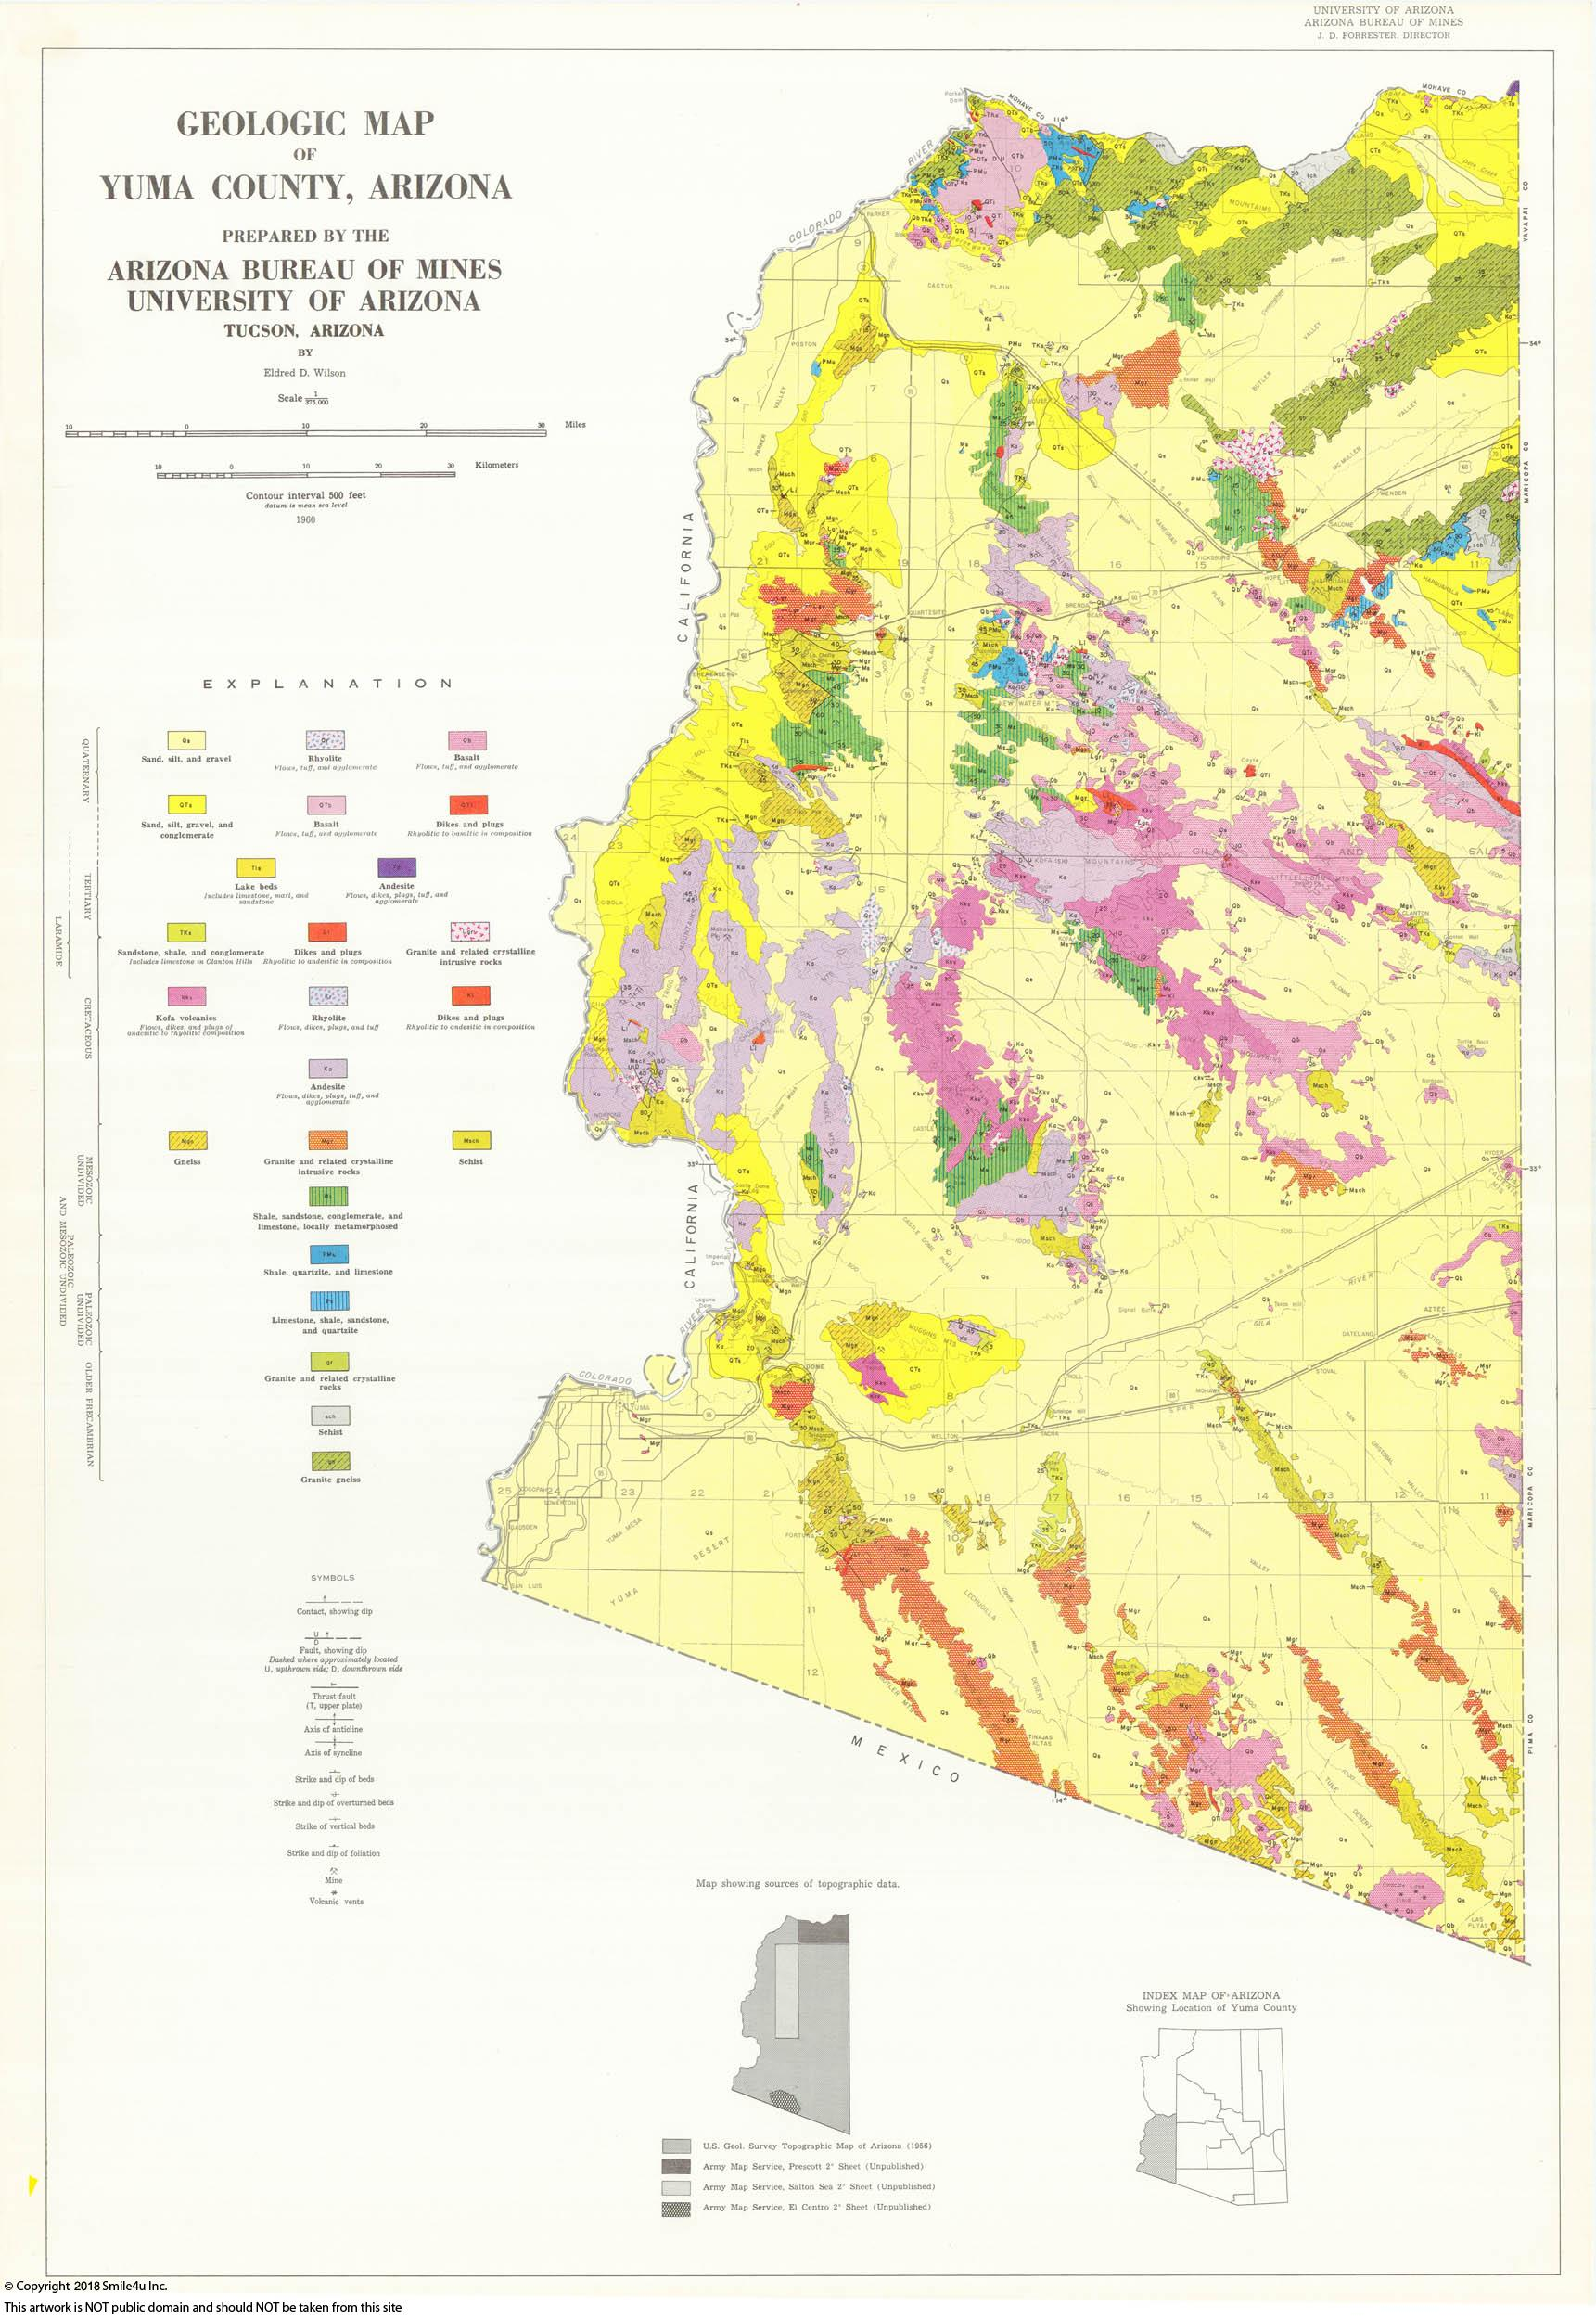 896359_watermarked_yumacounty_1960_geologicmap.jpg